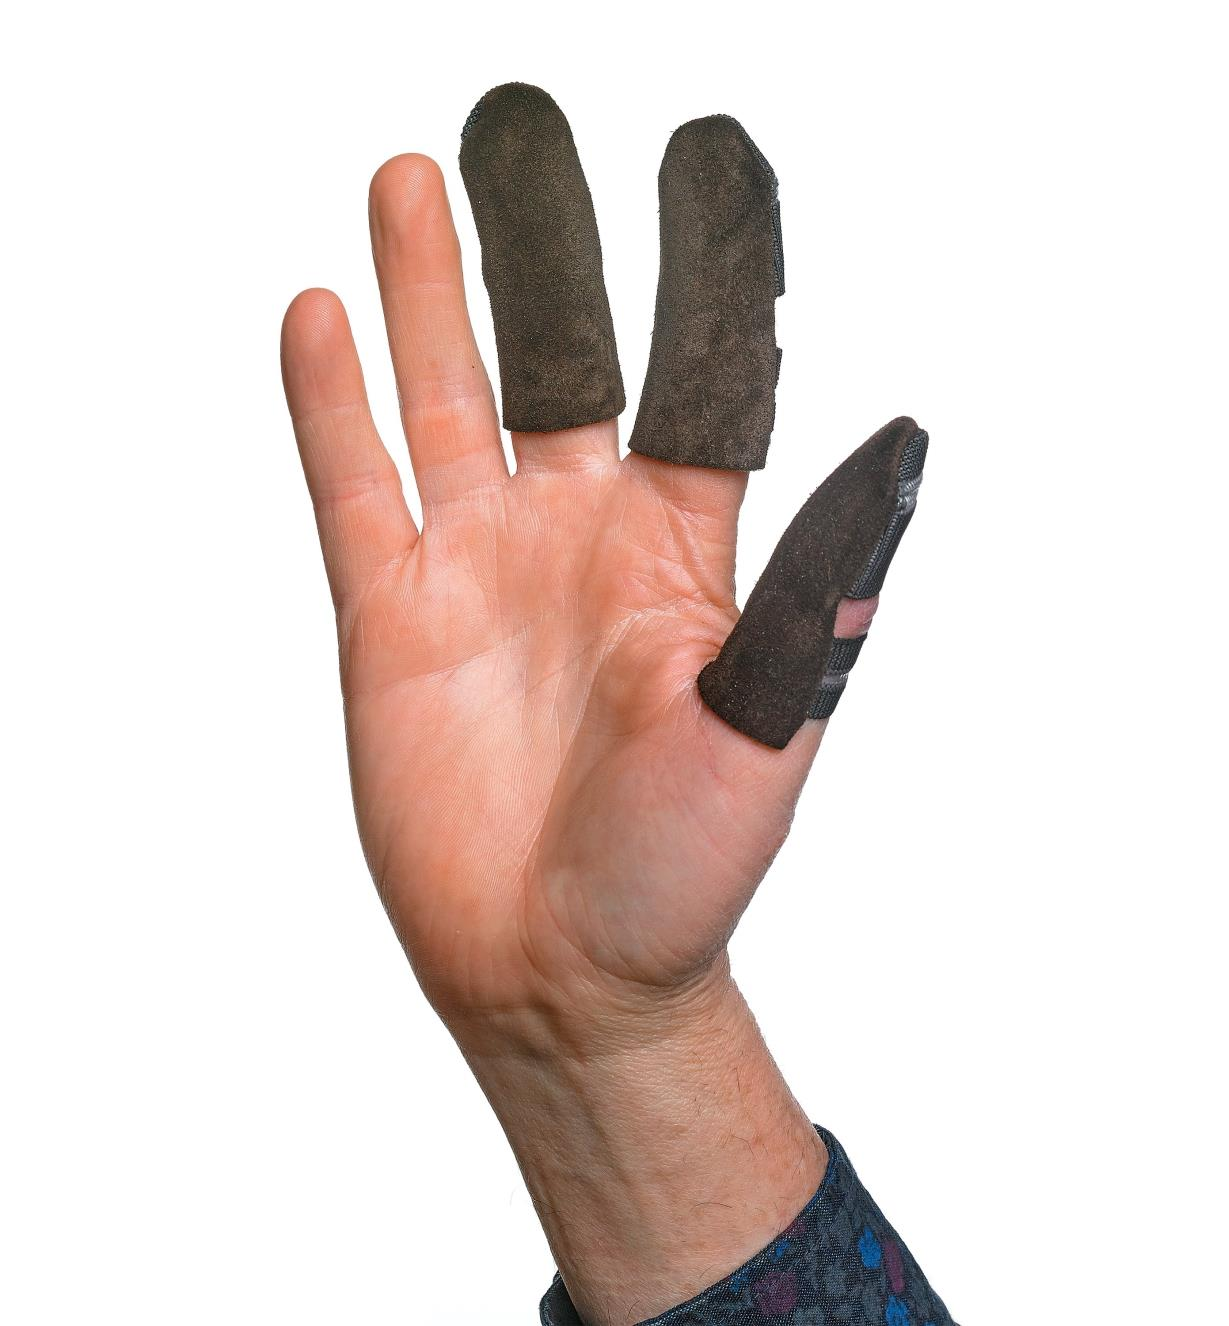 A raised hand wearing Leather Thumb & Finger Guards